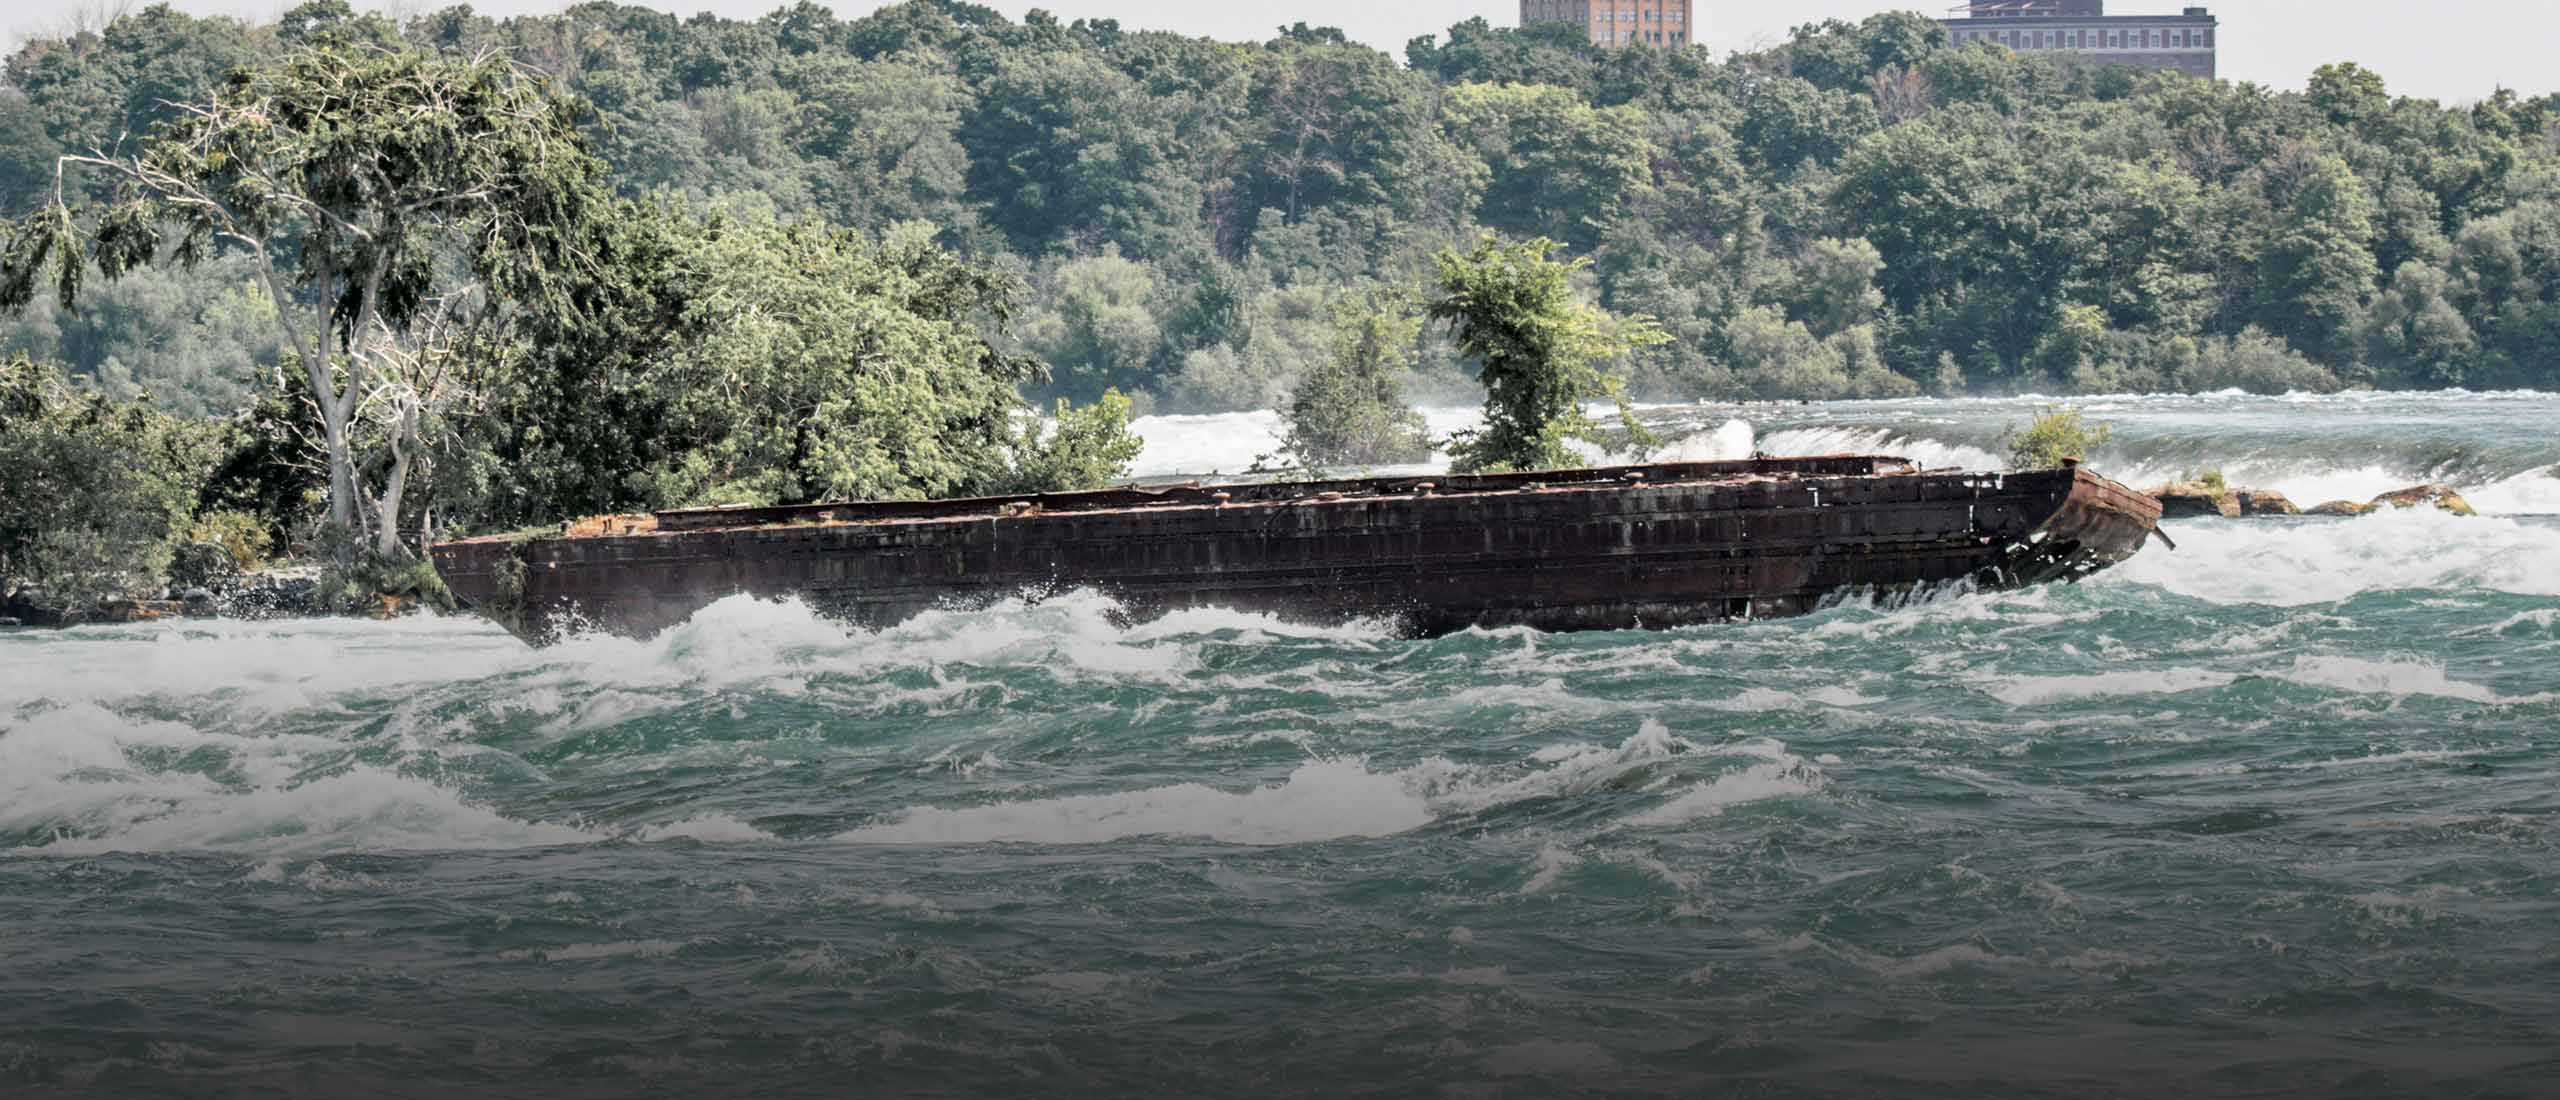 Severe Weather Conditions Impact Legendary Iron Scow Lodged in Niagara River